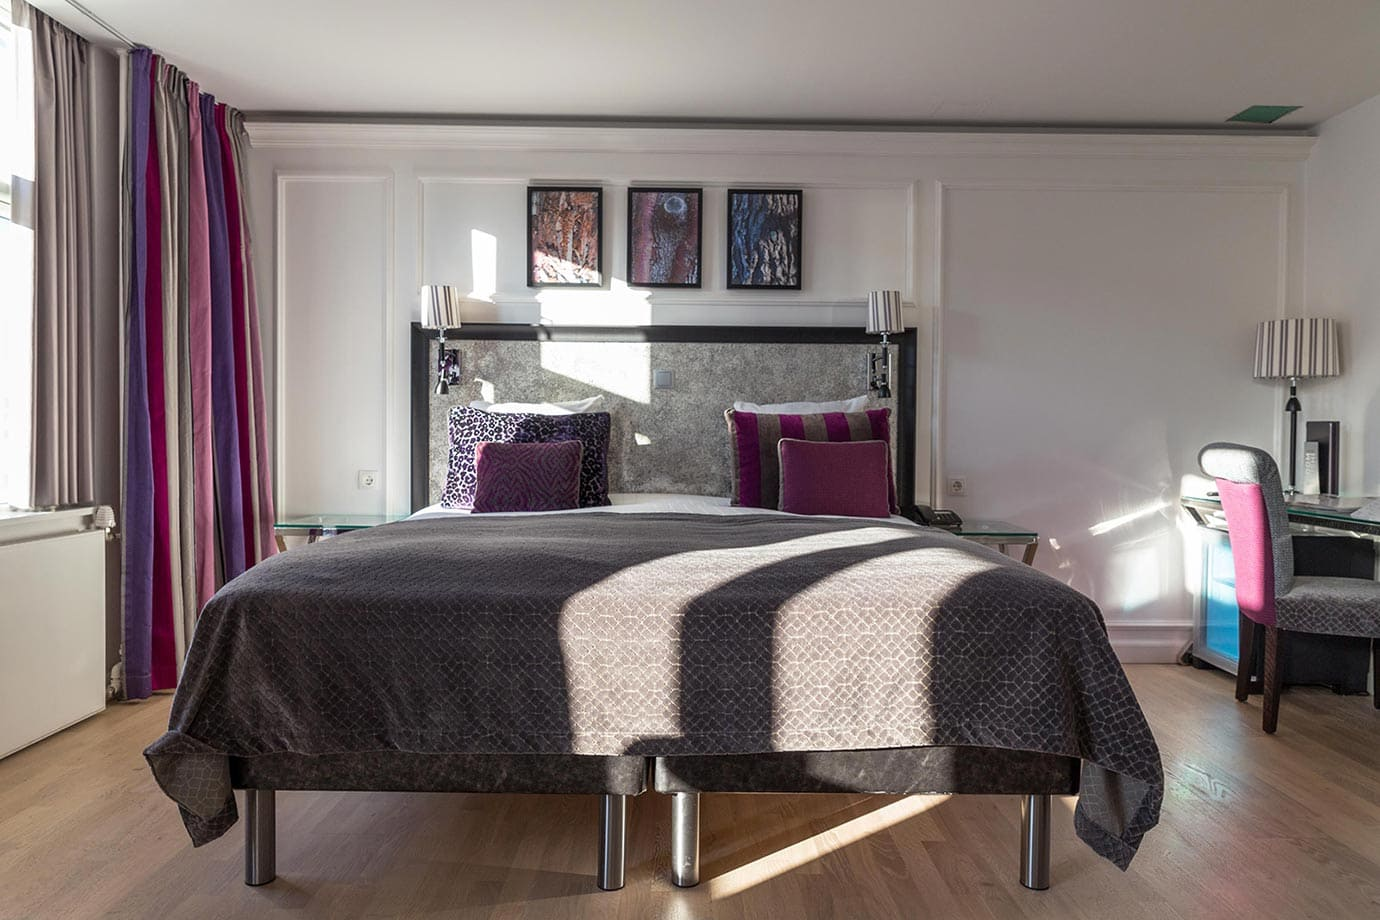 Rooms at Absalon Hotel